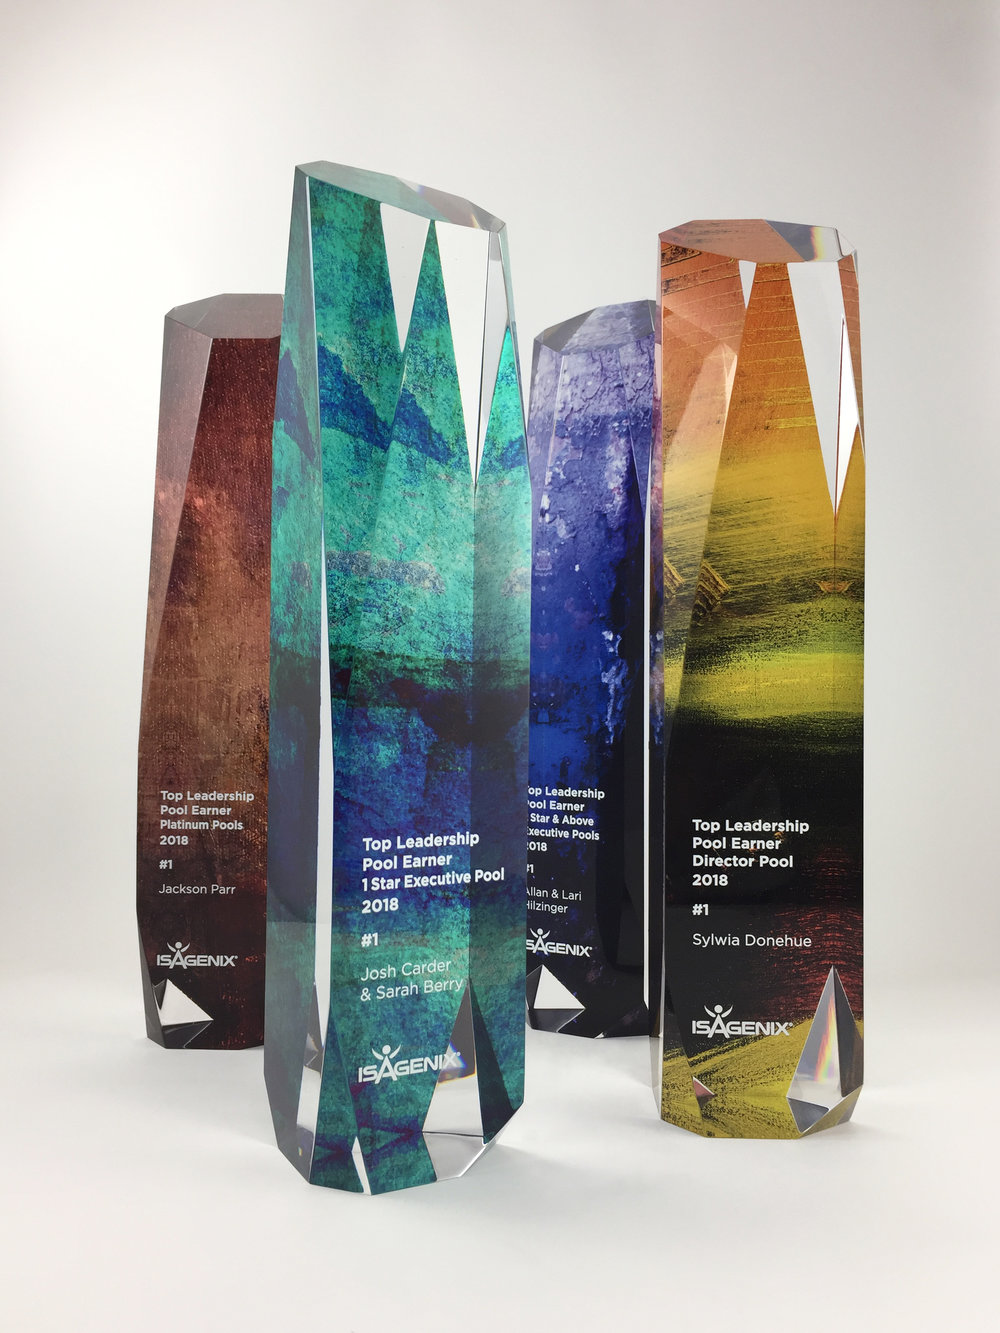 isagenix-leadershippool-acrylic-art-trophy-award-01.jpg